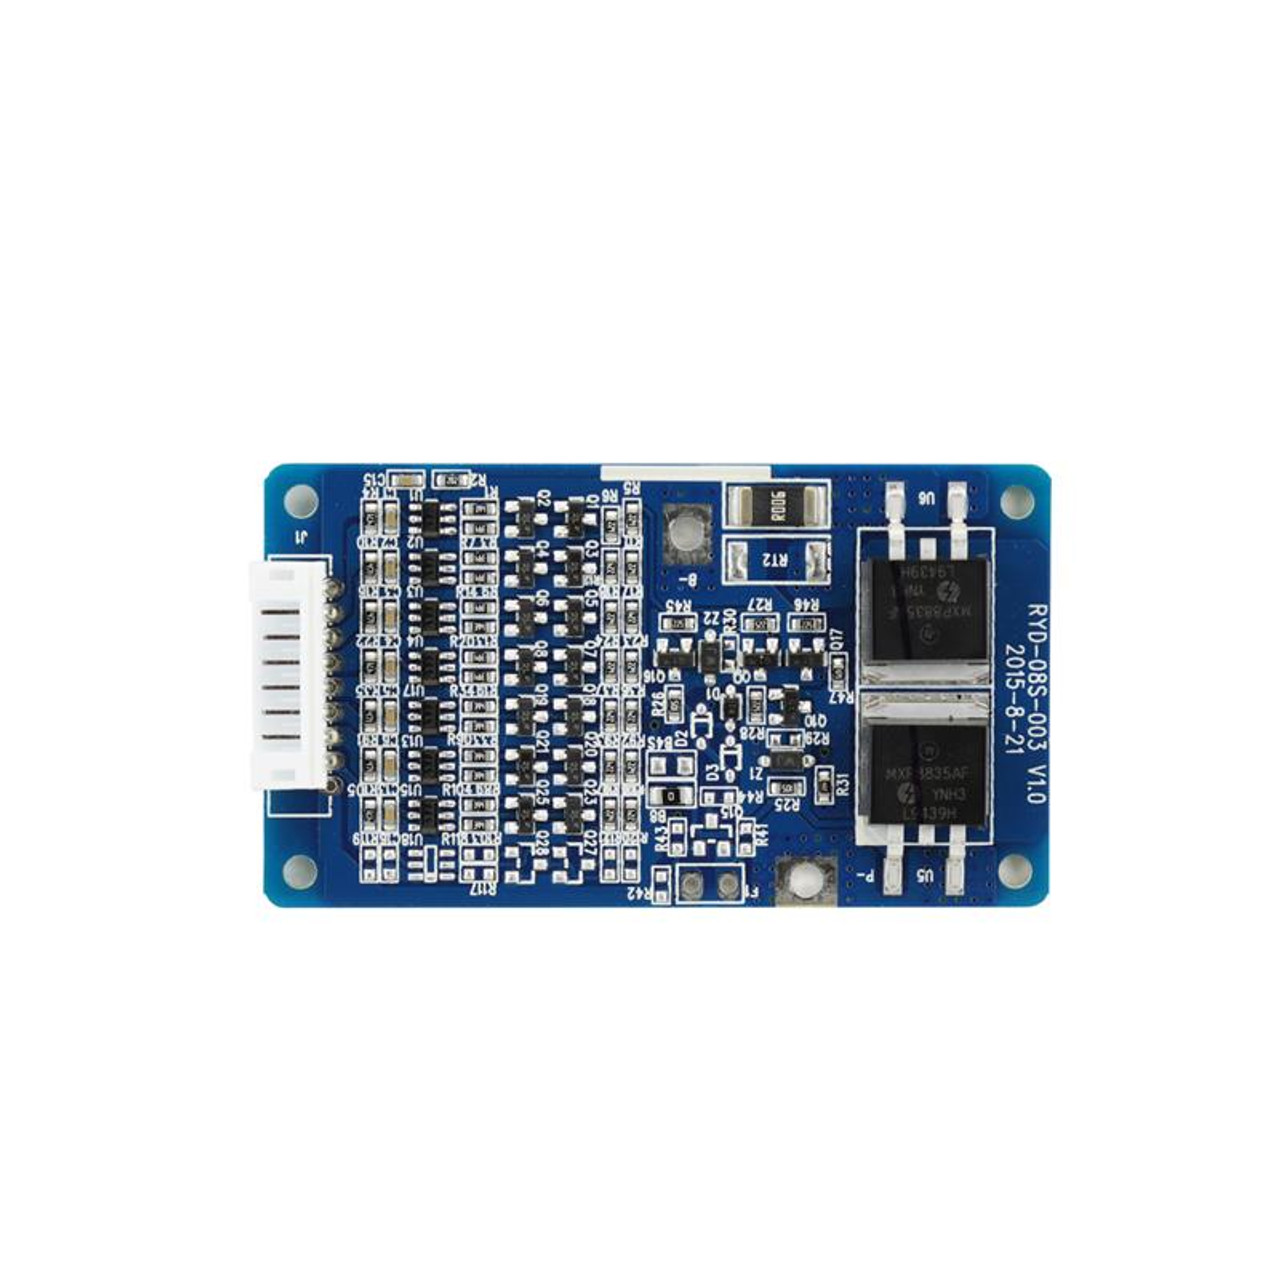 Protection Circuit Modules [PCB] for 25.9V (7S) Li-ion Battery Pack (Working 7A, Cutoff 13A)